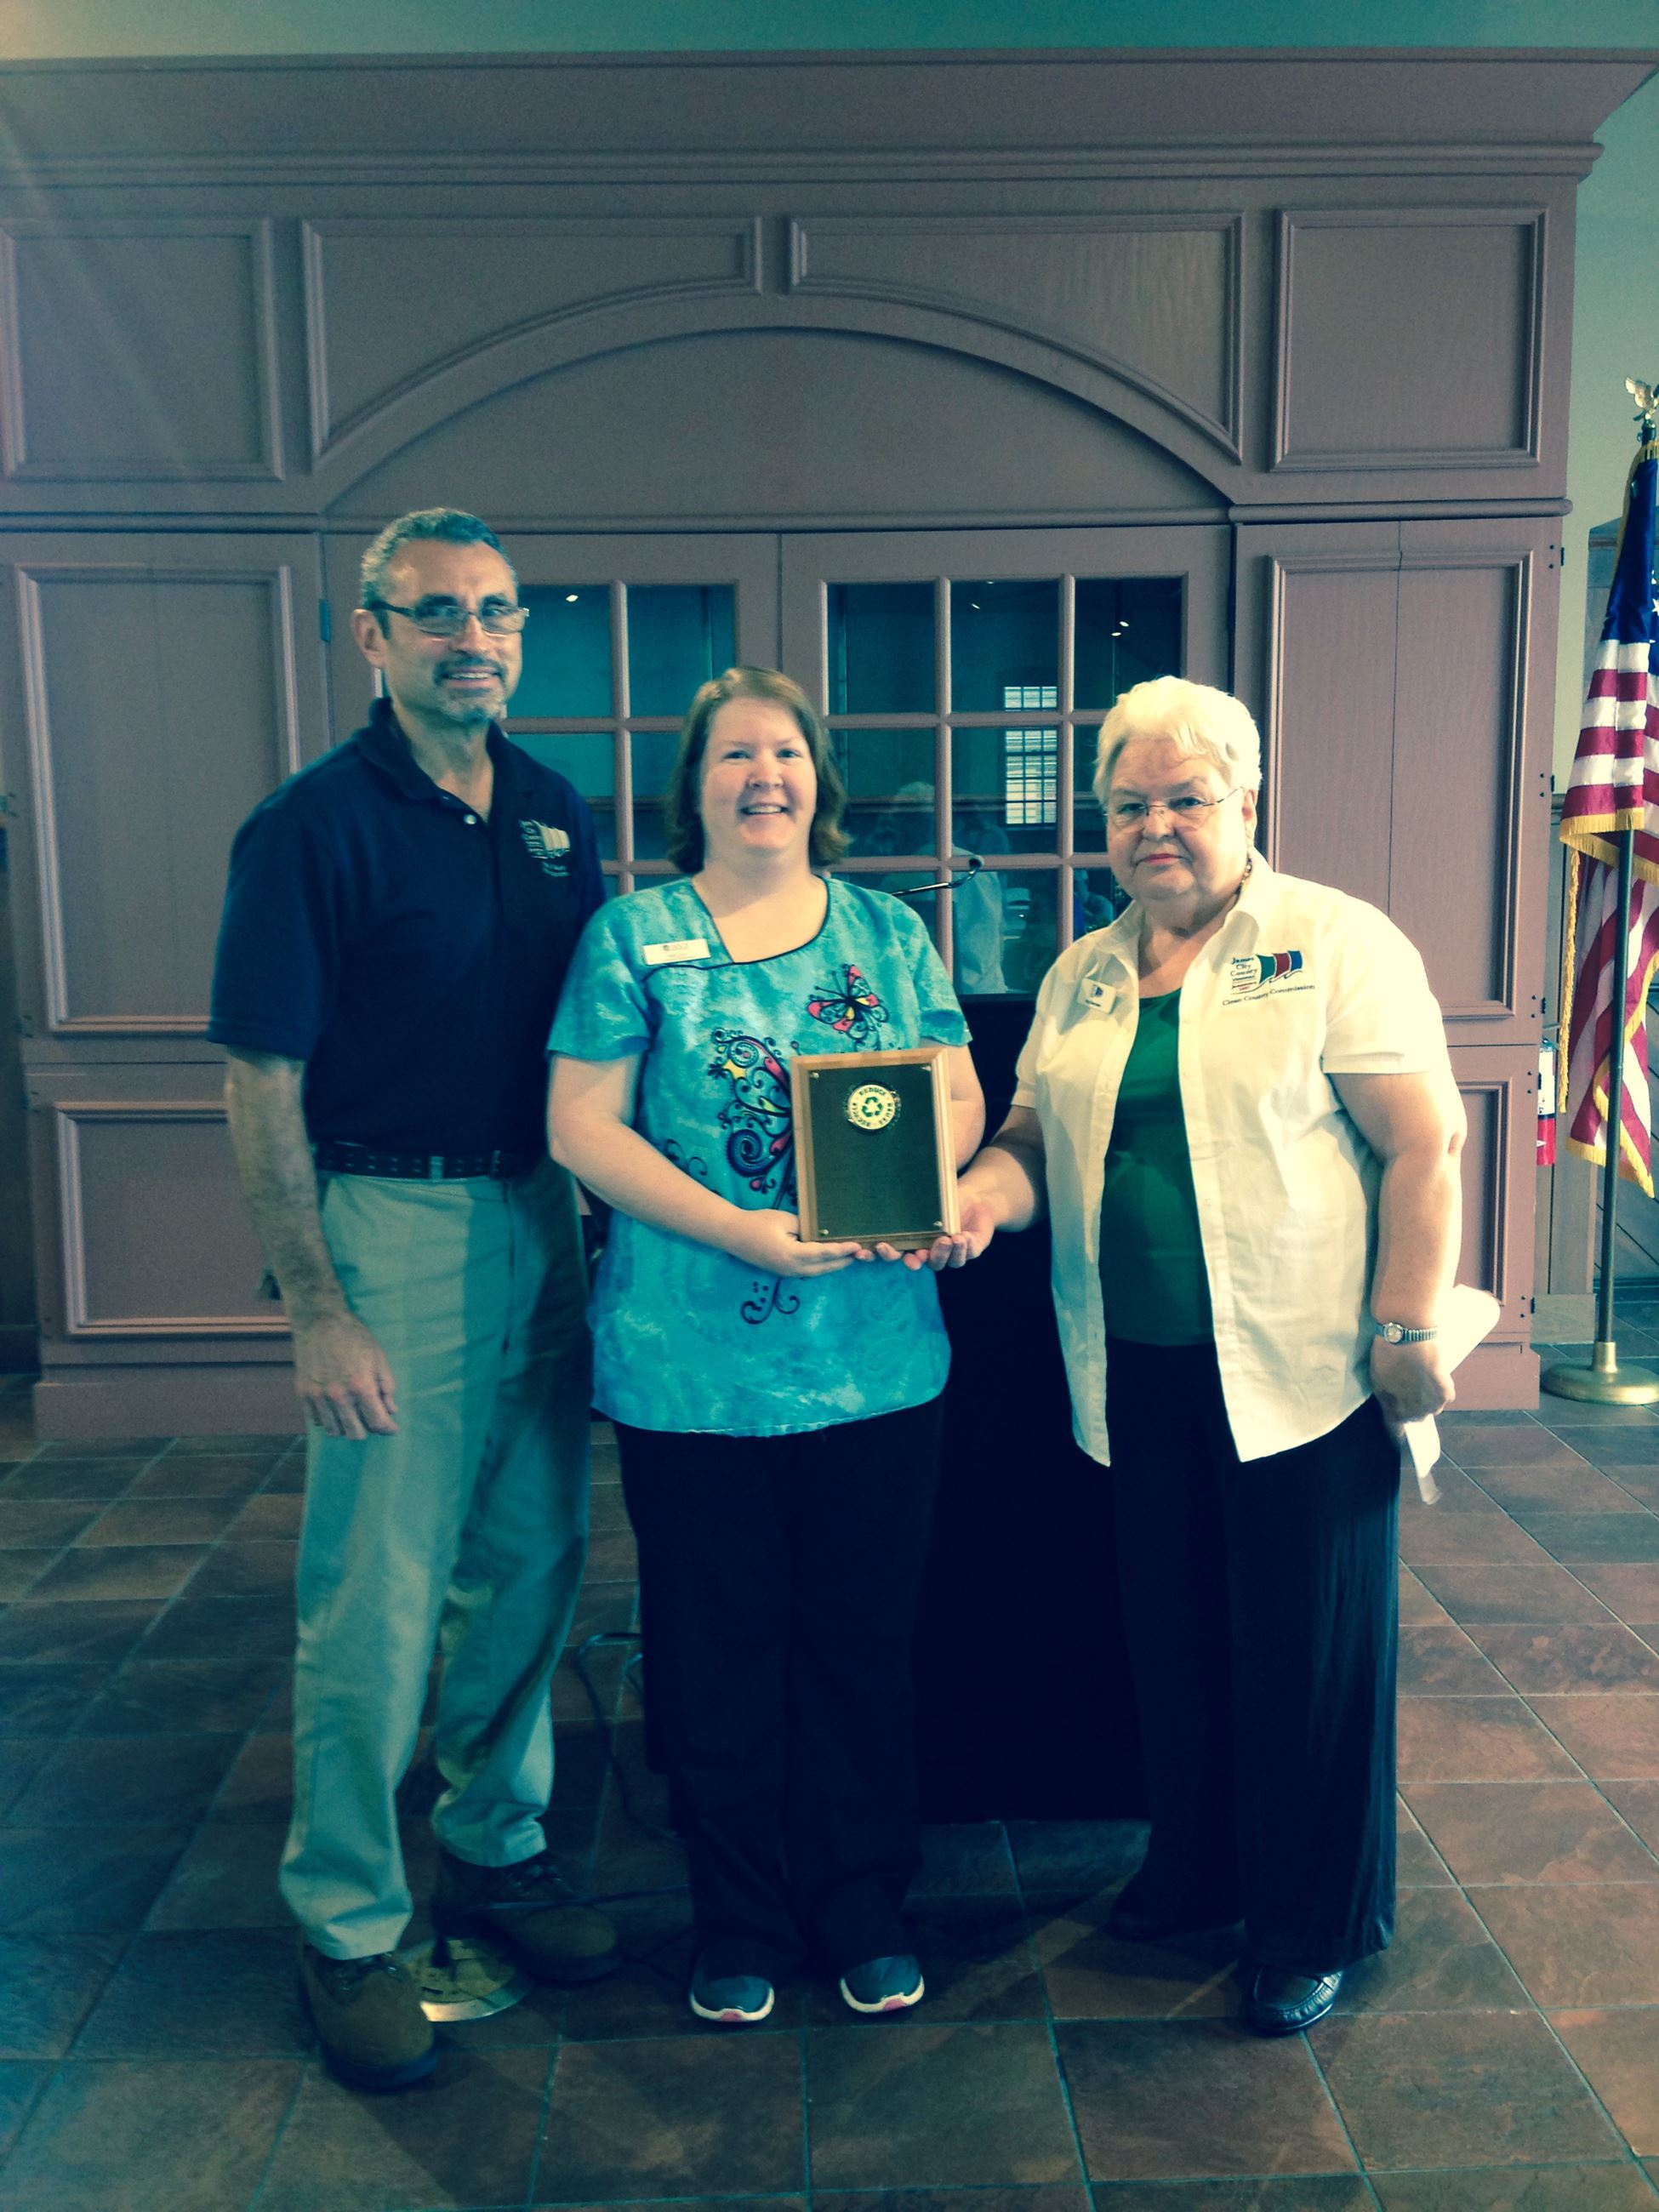 Clean Business Award Winner 2015 4th Quarter, Advanced Vision Institute